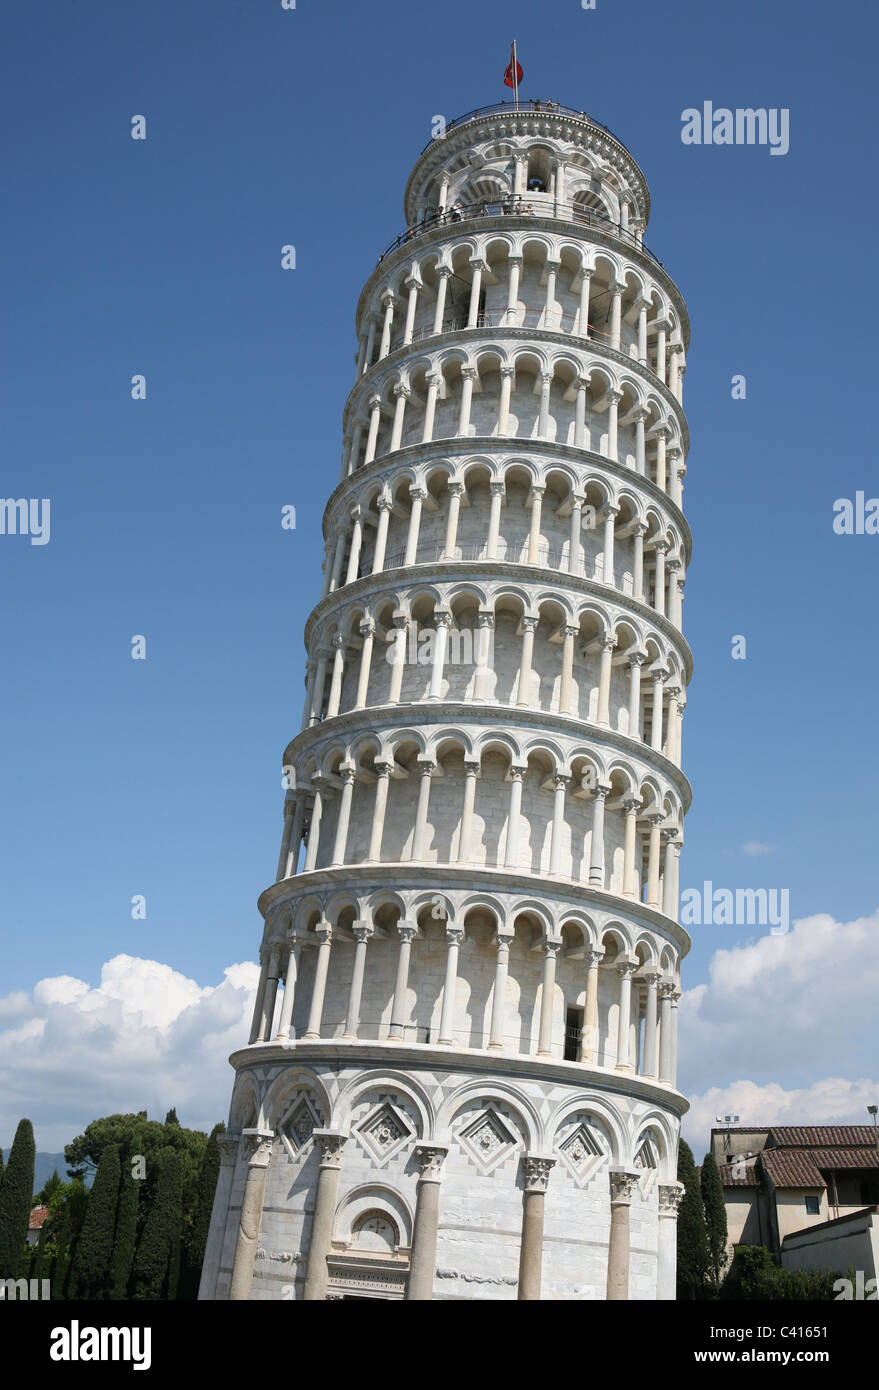 leaning tower of pisa design